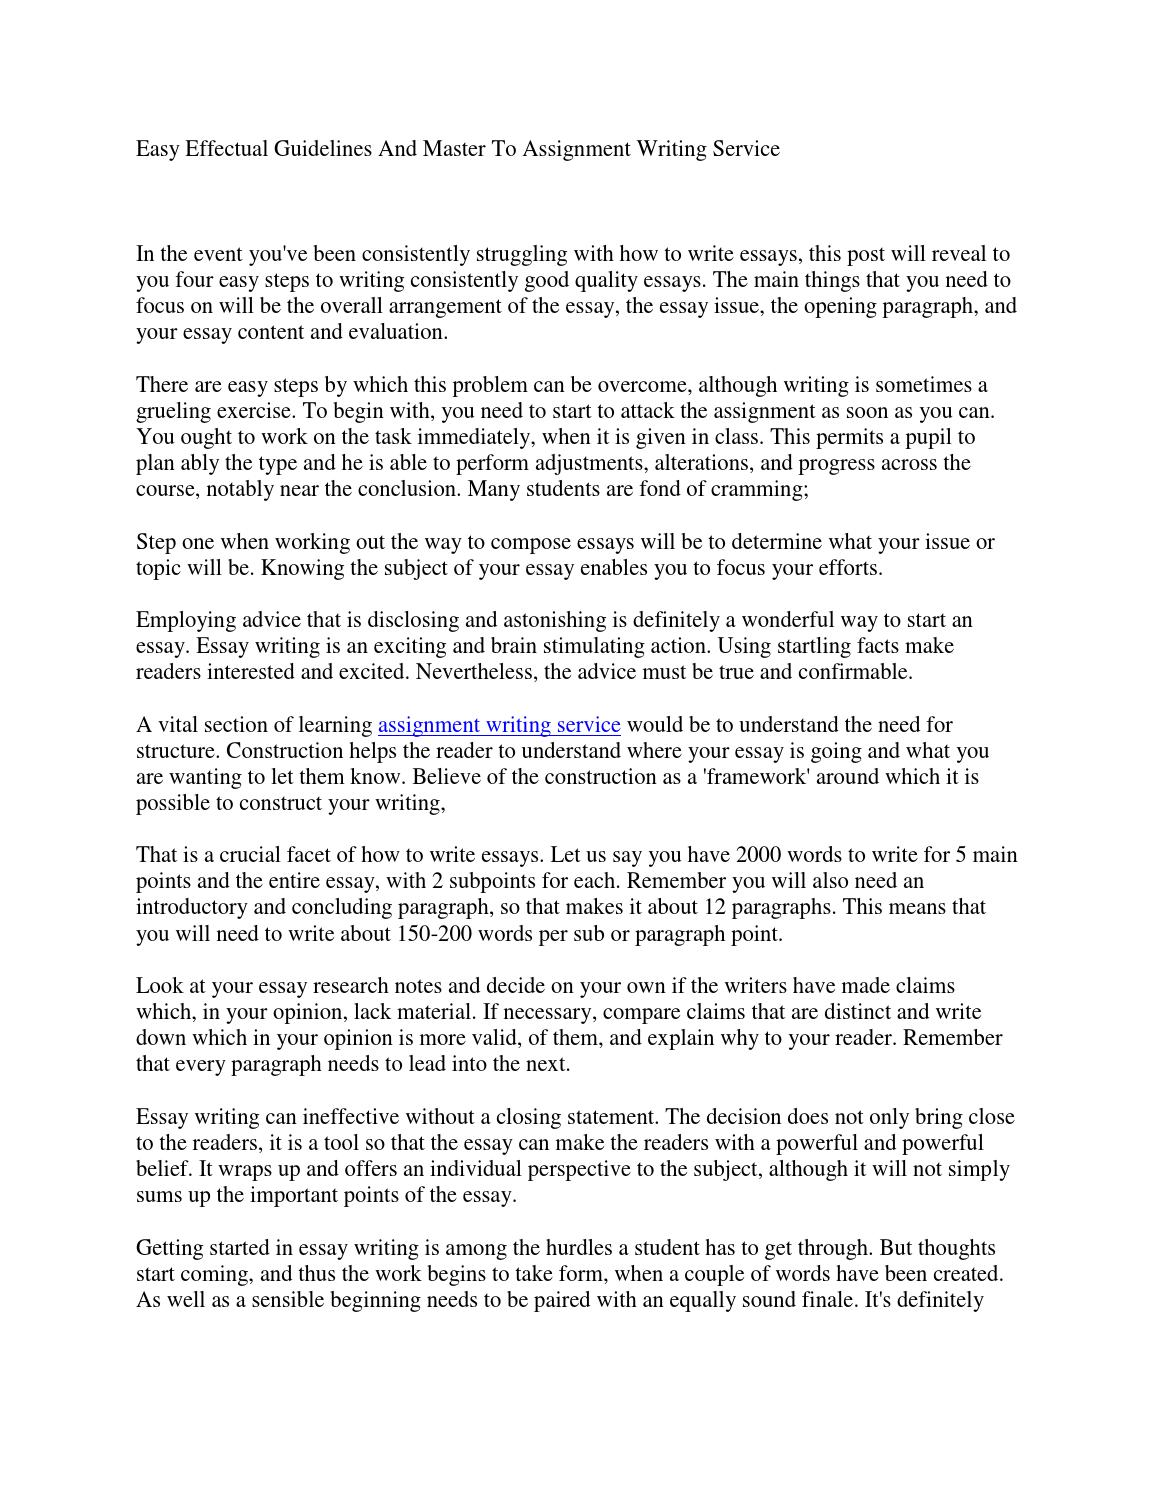 Persuasive Essay Thesis Statement Examples Easy But Effectual Guidelines And Master To Essay Writing By  Mcculloughwalsh  Issuu Essay Thesis Examples also How To Write A Thesis For A Narrative Essay Easy But Effectual Guidelines And Master To Essay Writing By  Proposal Essay Sample